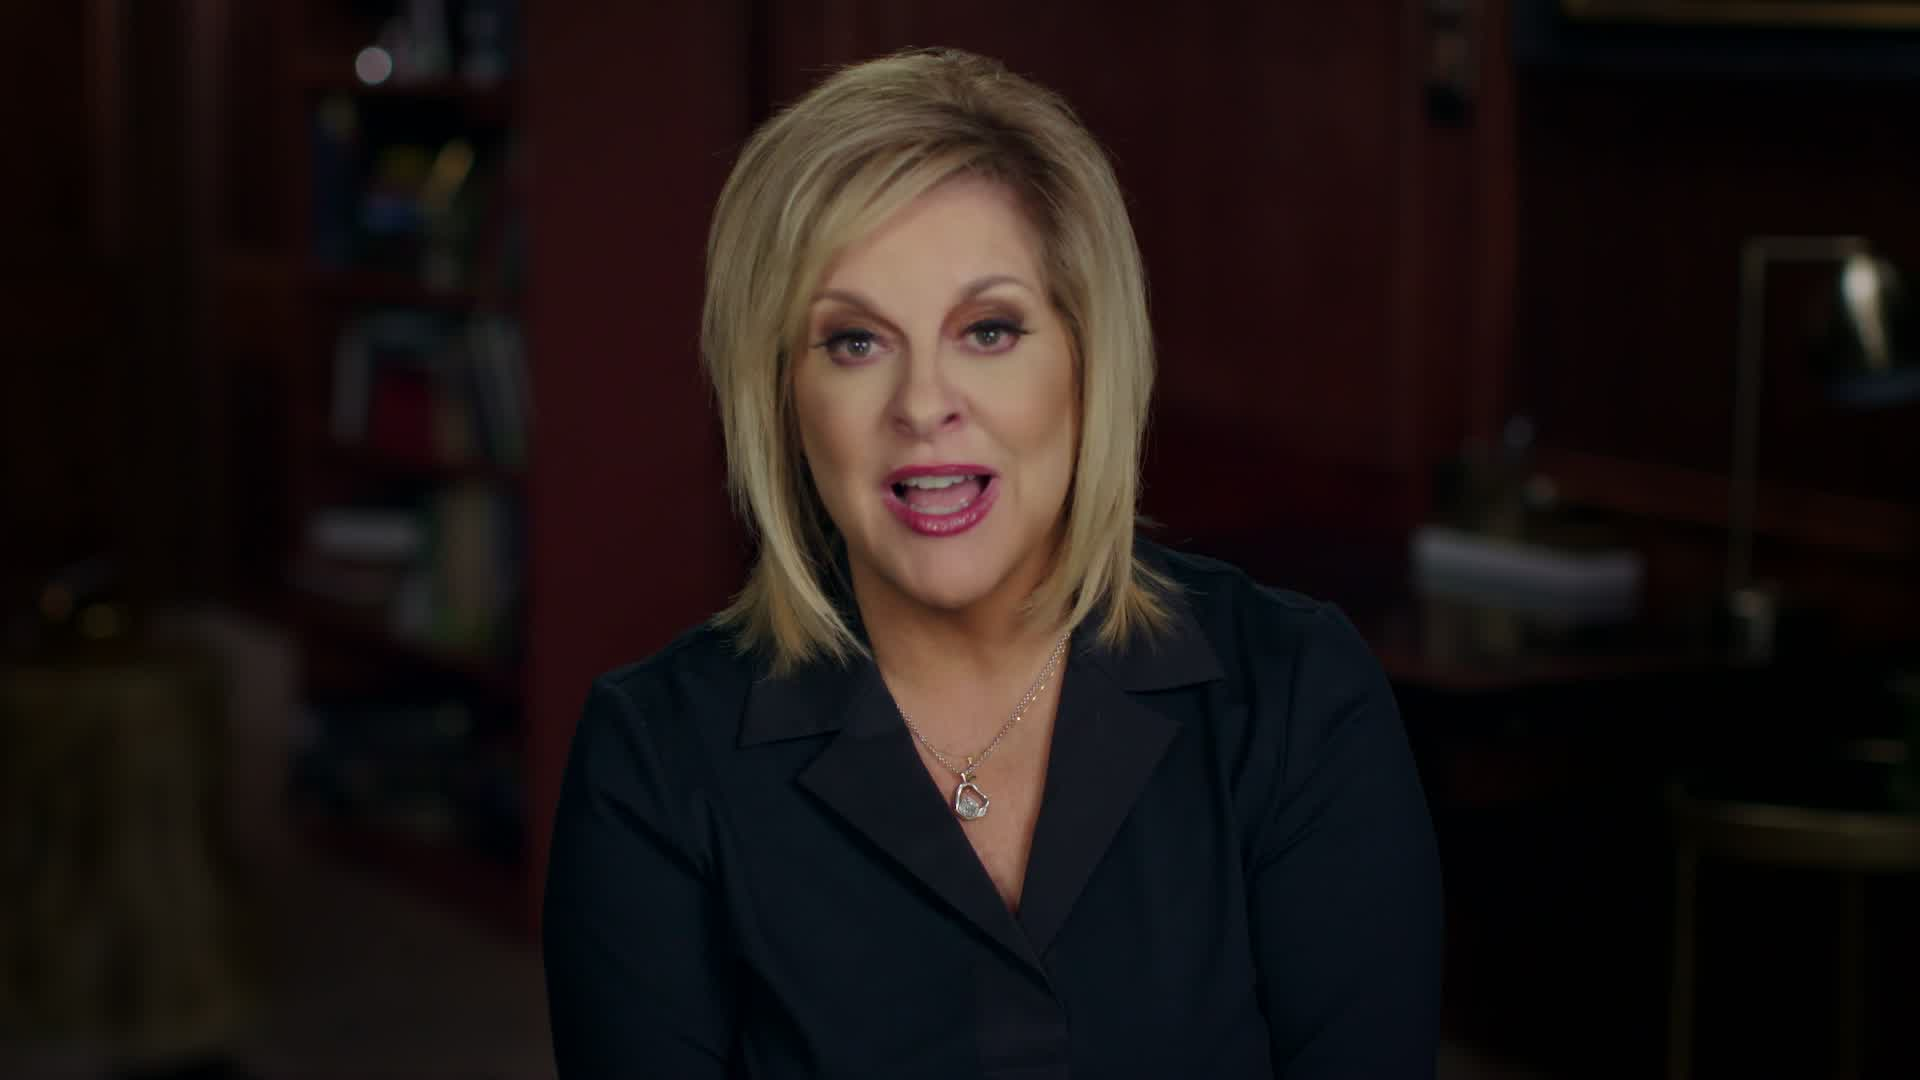 Injustice With Nancy Grace Sneak: Rod And Shele's Separation Was Amicable ... At First